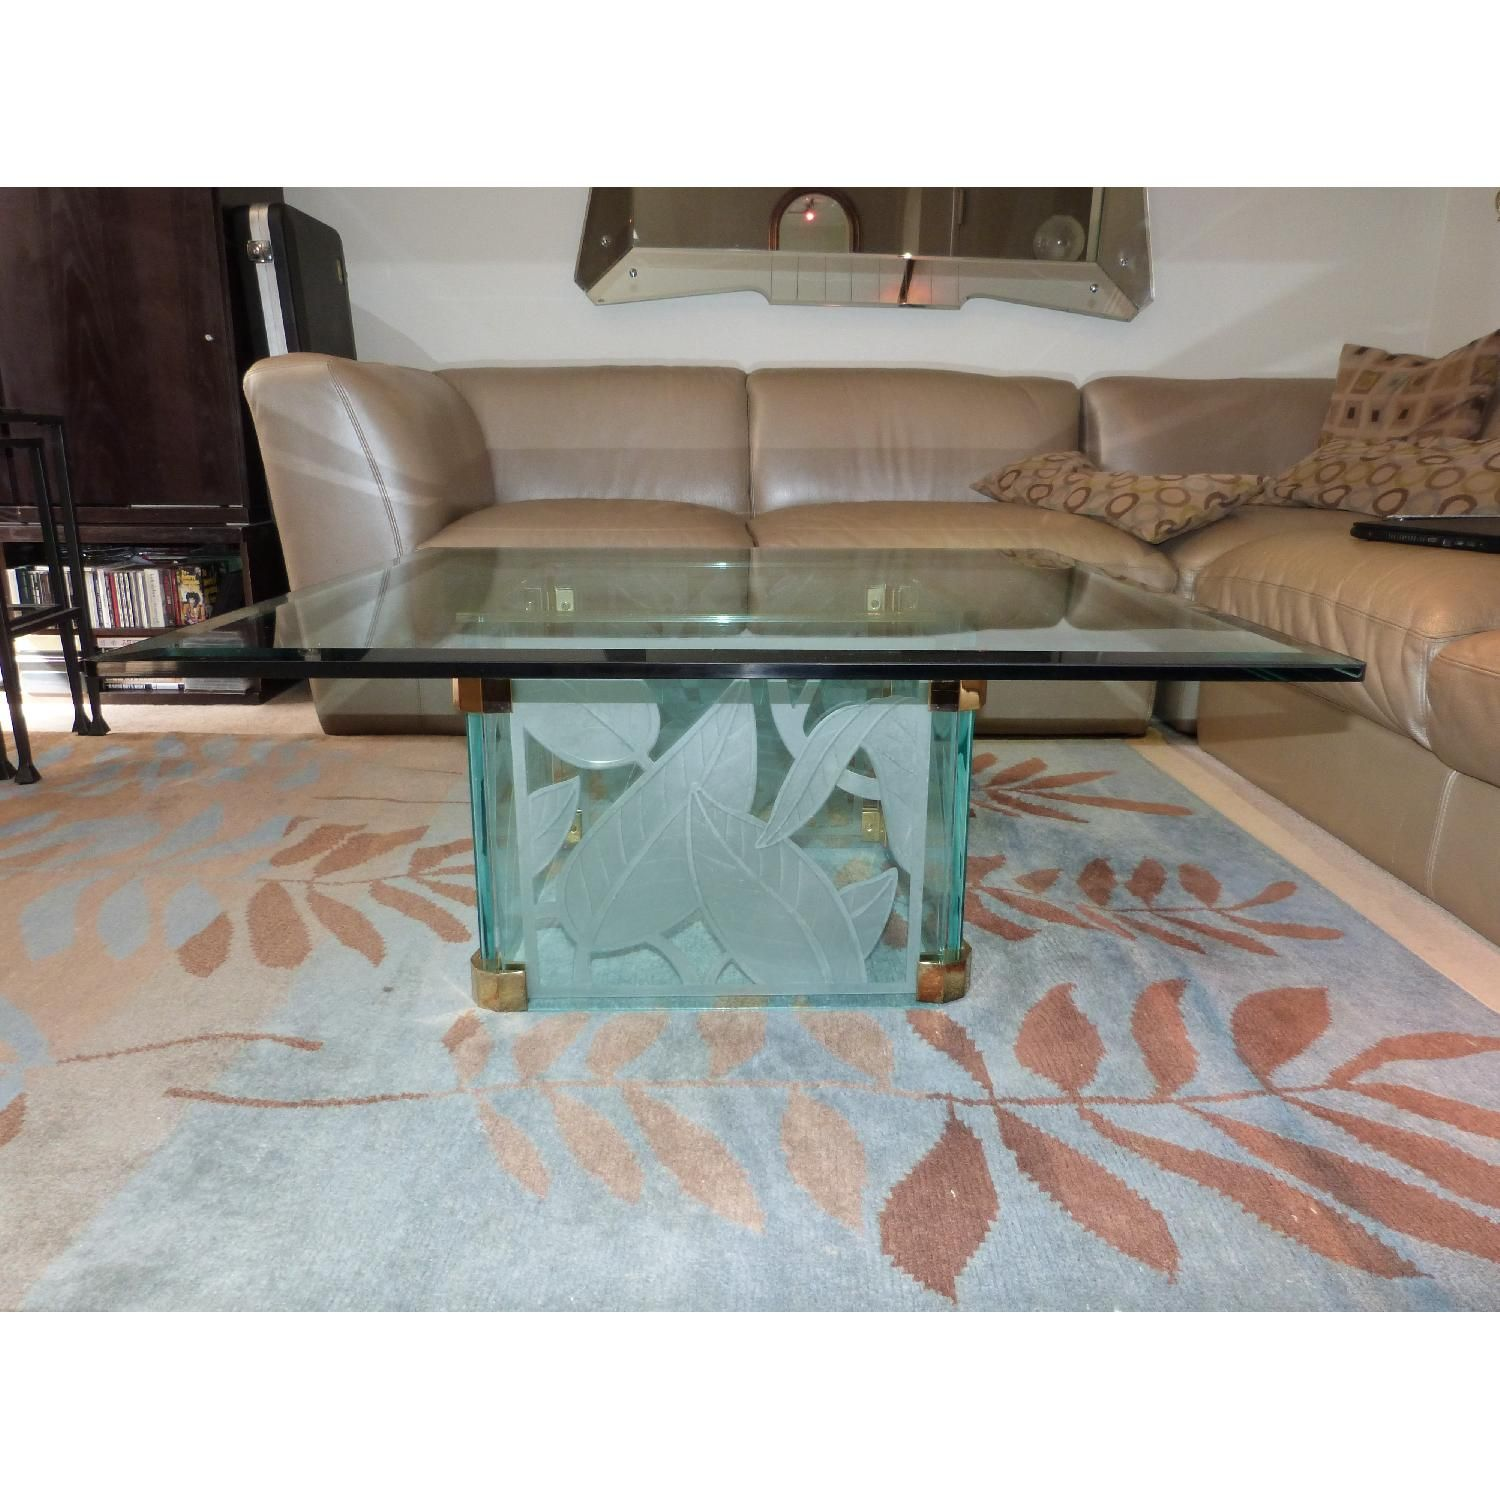 Italian Made Etched Glass Coffee Table 0 Apartment ideas